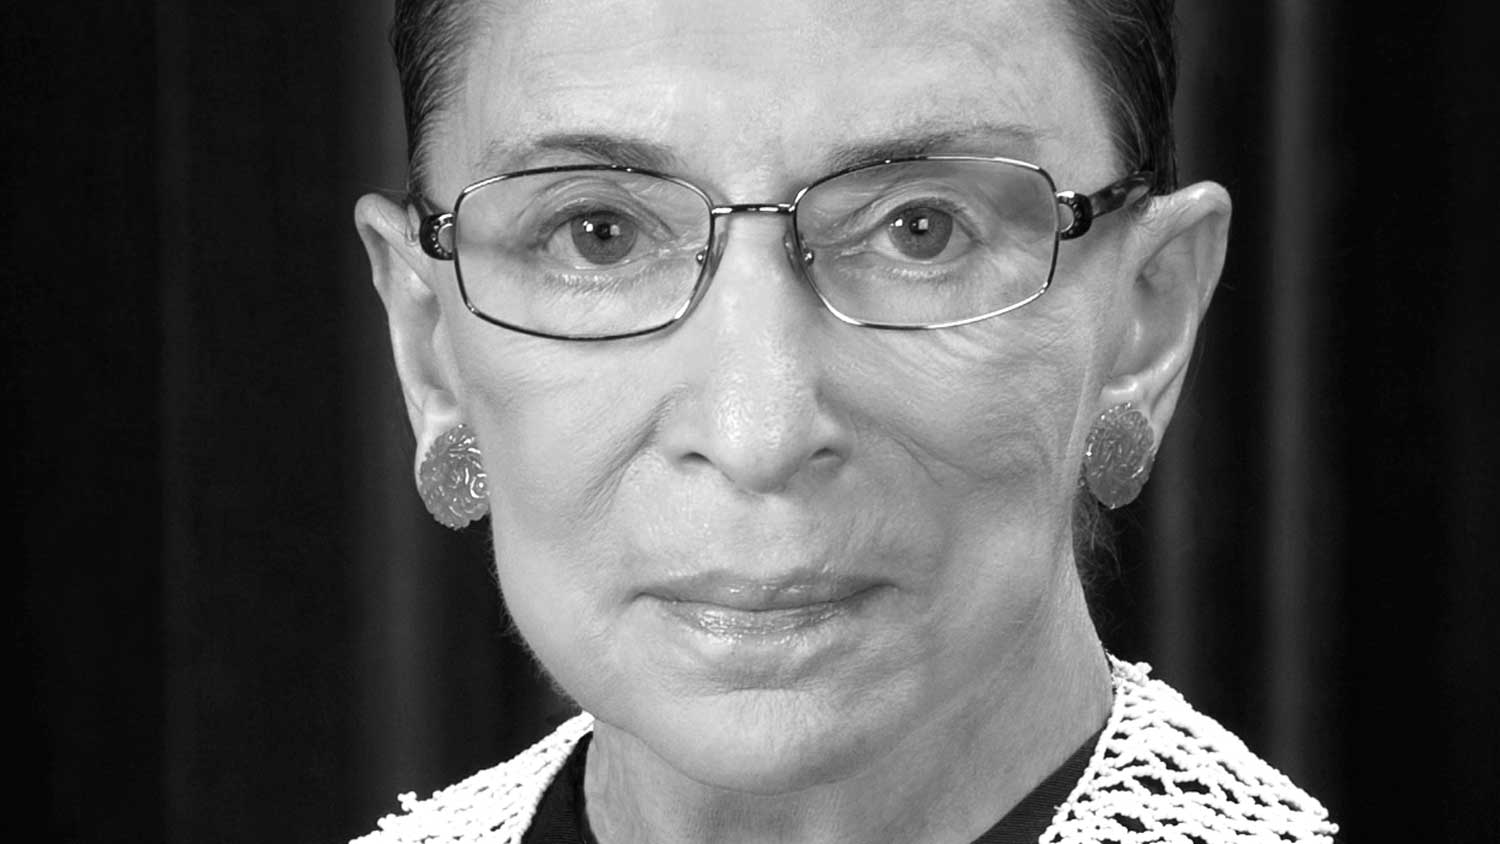 Ruth Bader Ginsburg, official SCOTUS portrait